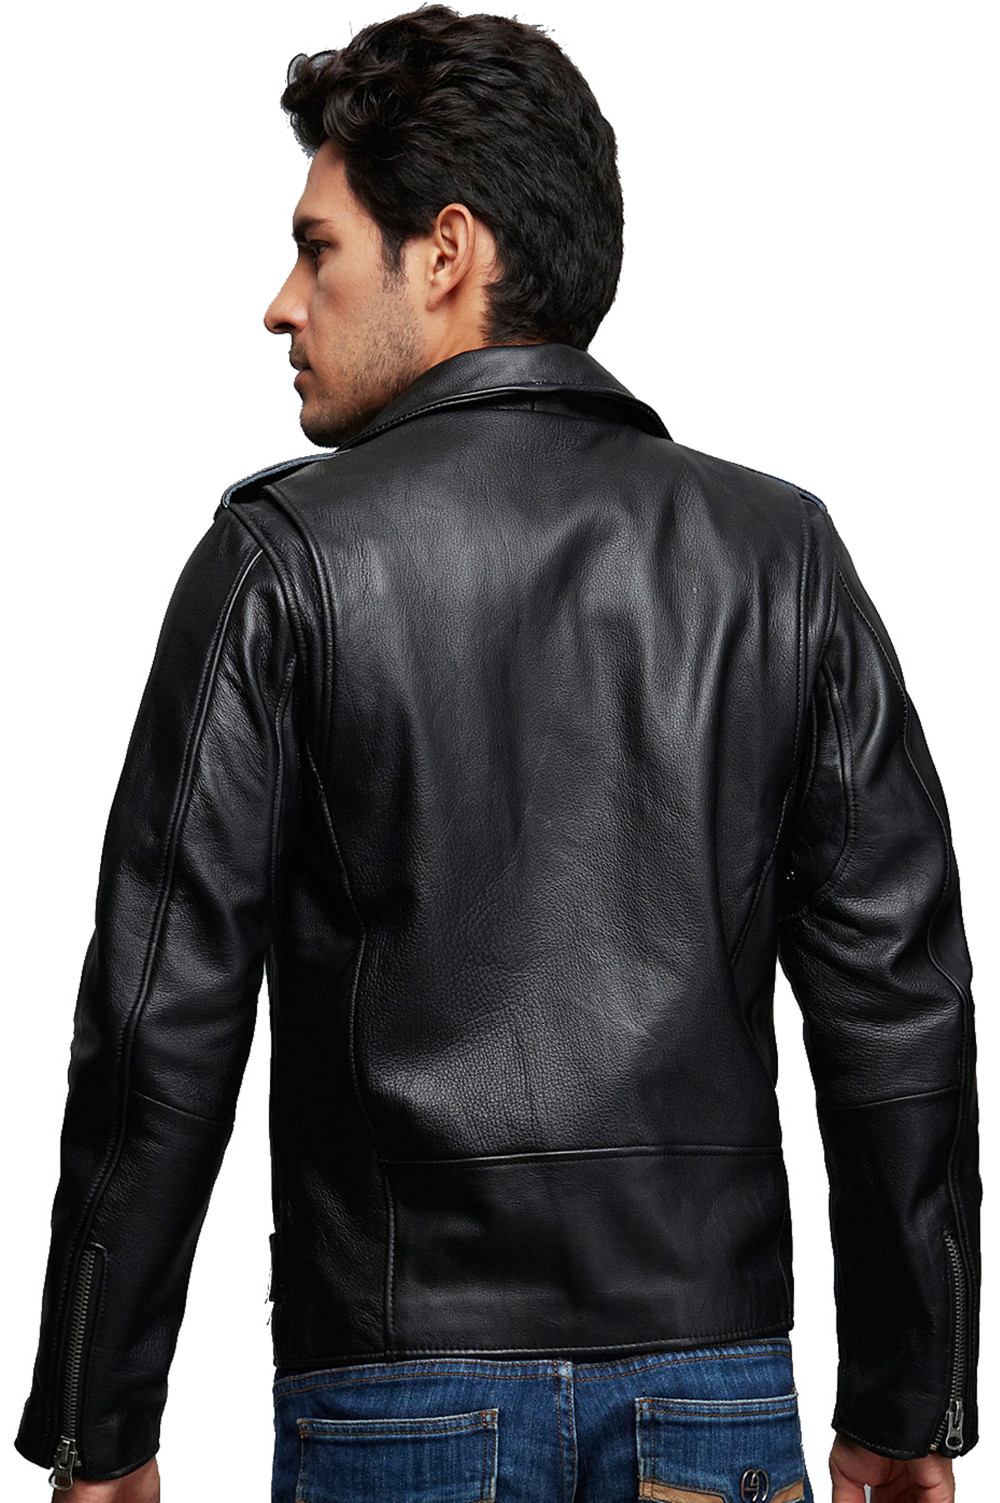 Wholesale Mens Black Biker Motorcycle Leather Jackets